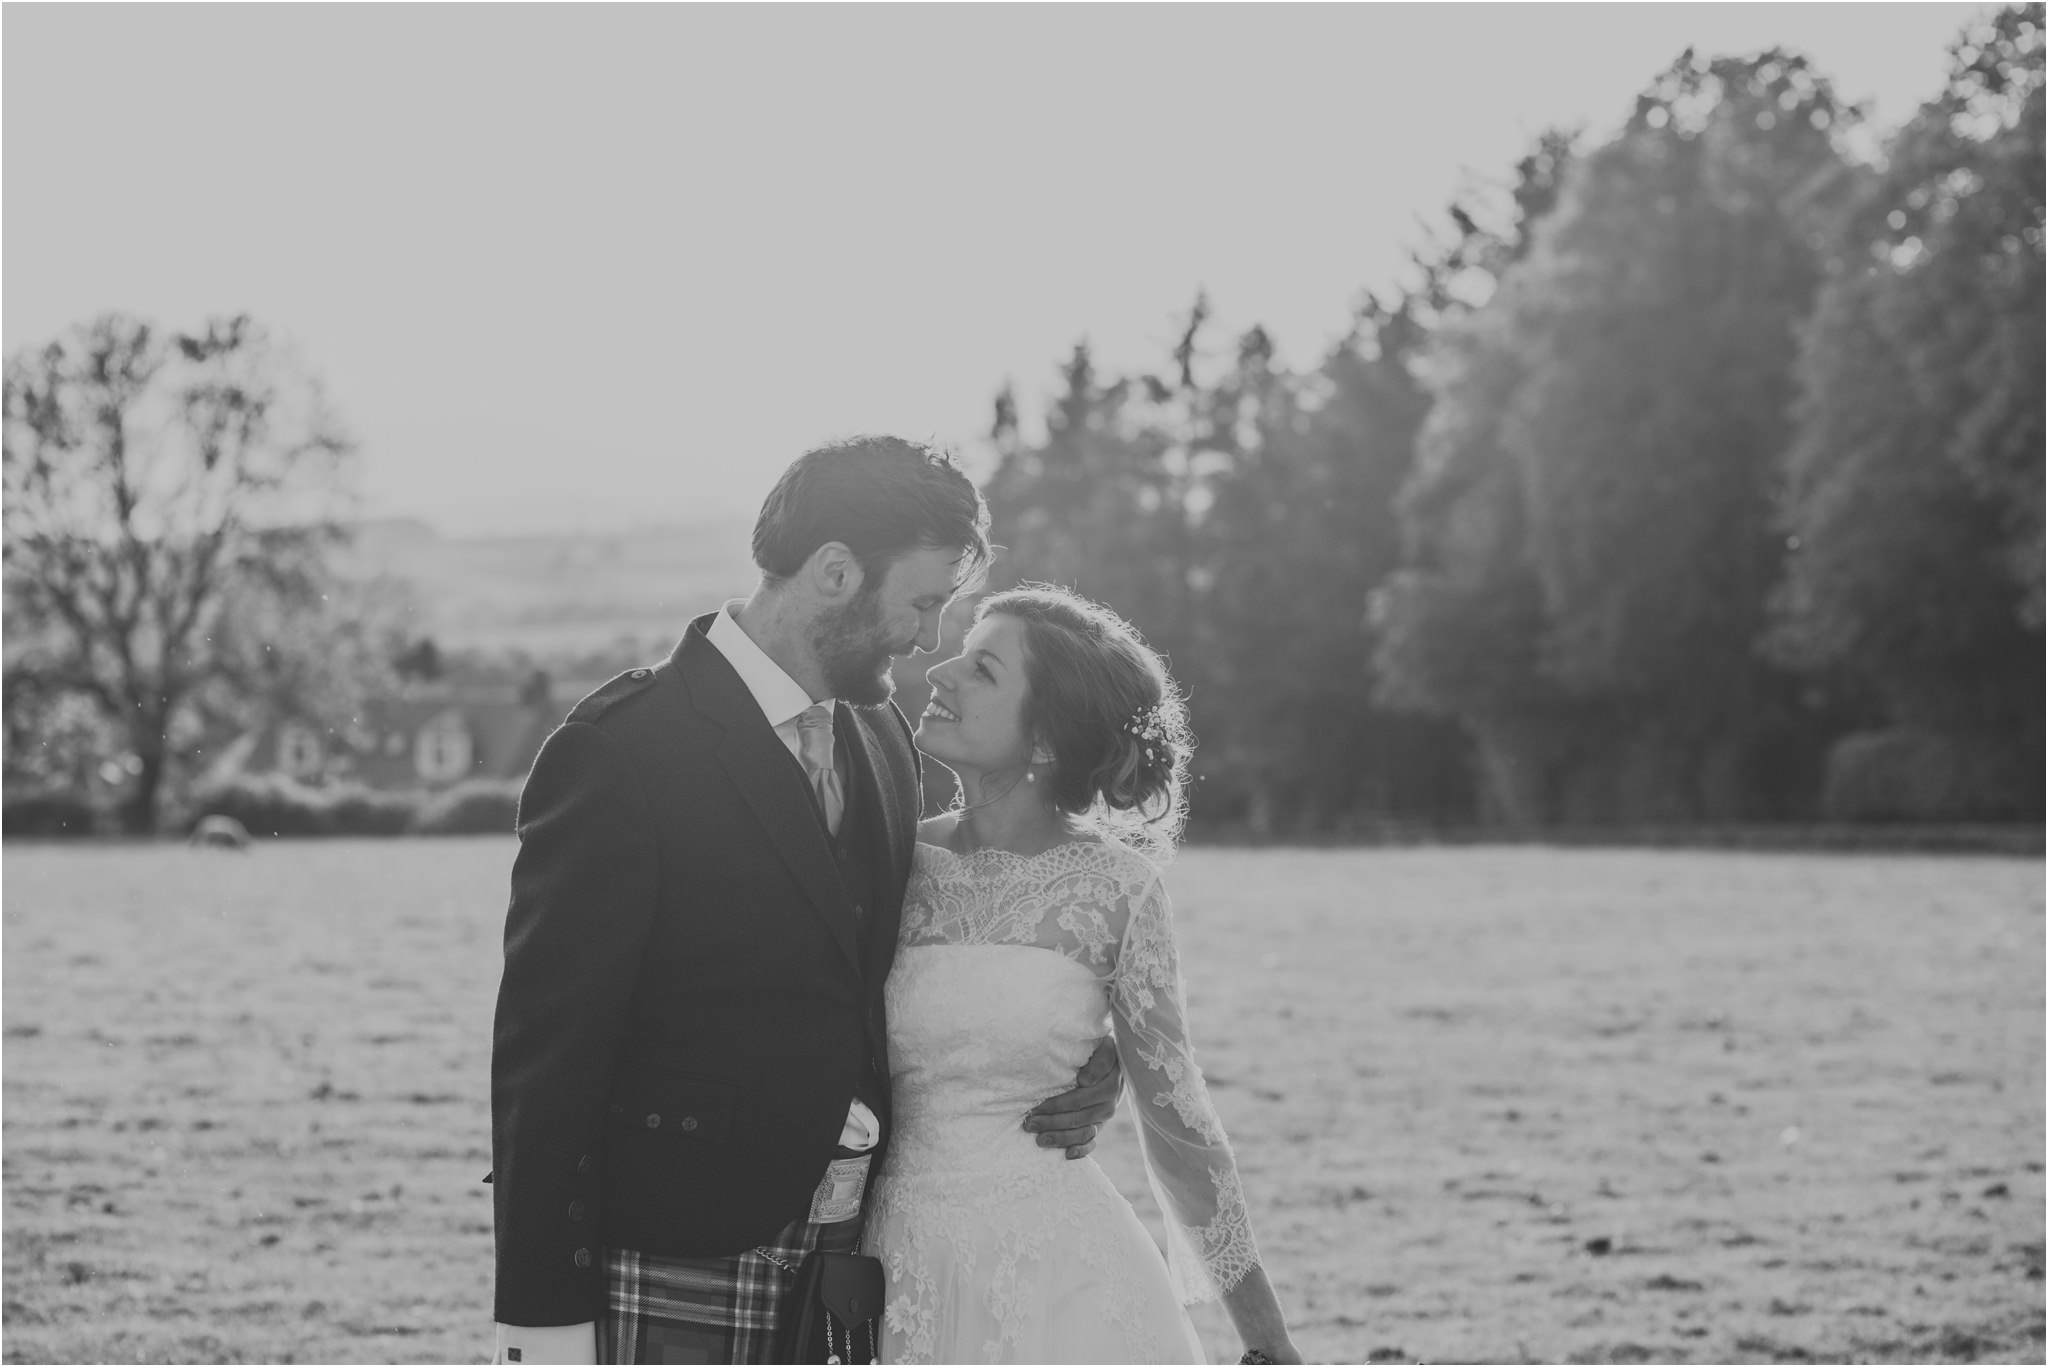 Photography 78 - Glasgow Wedding Photographer - Fraser Thirza - Killearn Village Hall - Three Sisters Bake Wedding_0148.jpg